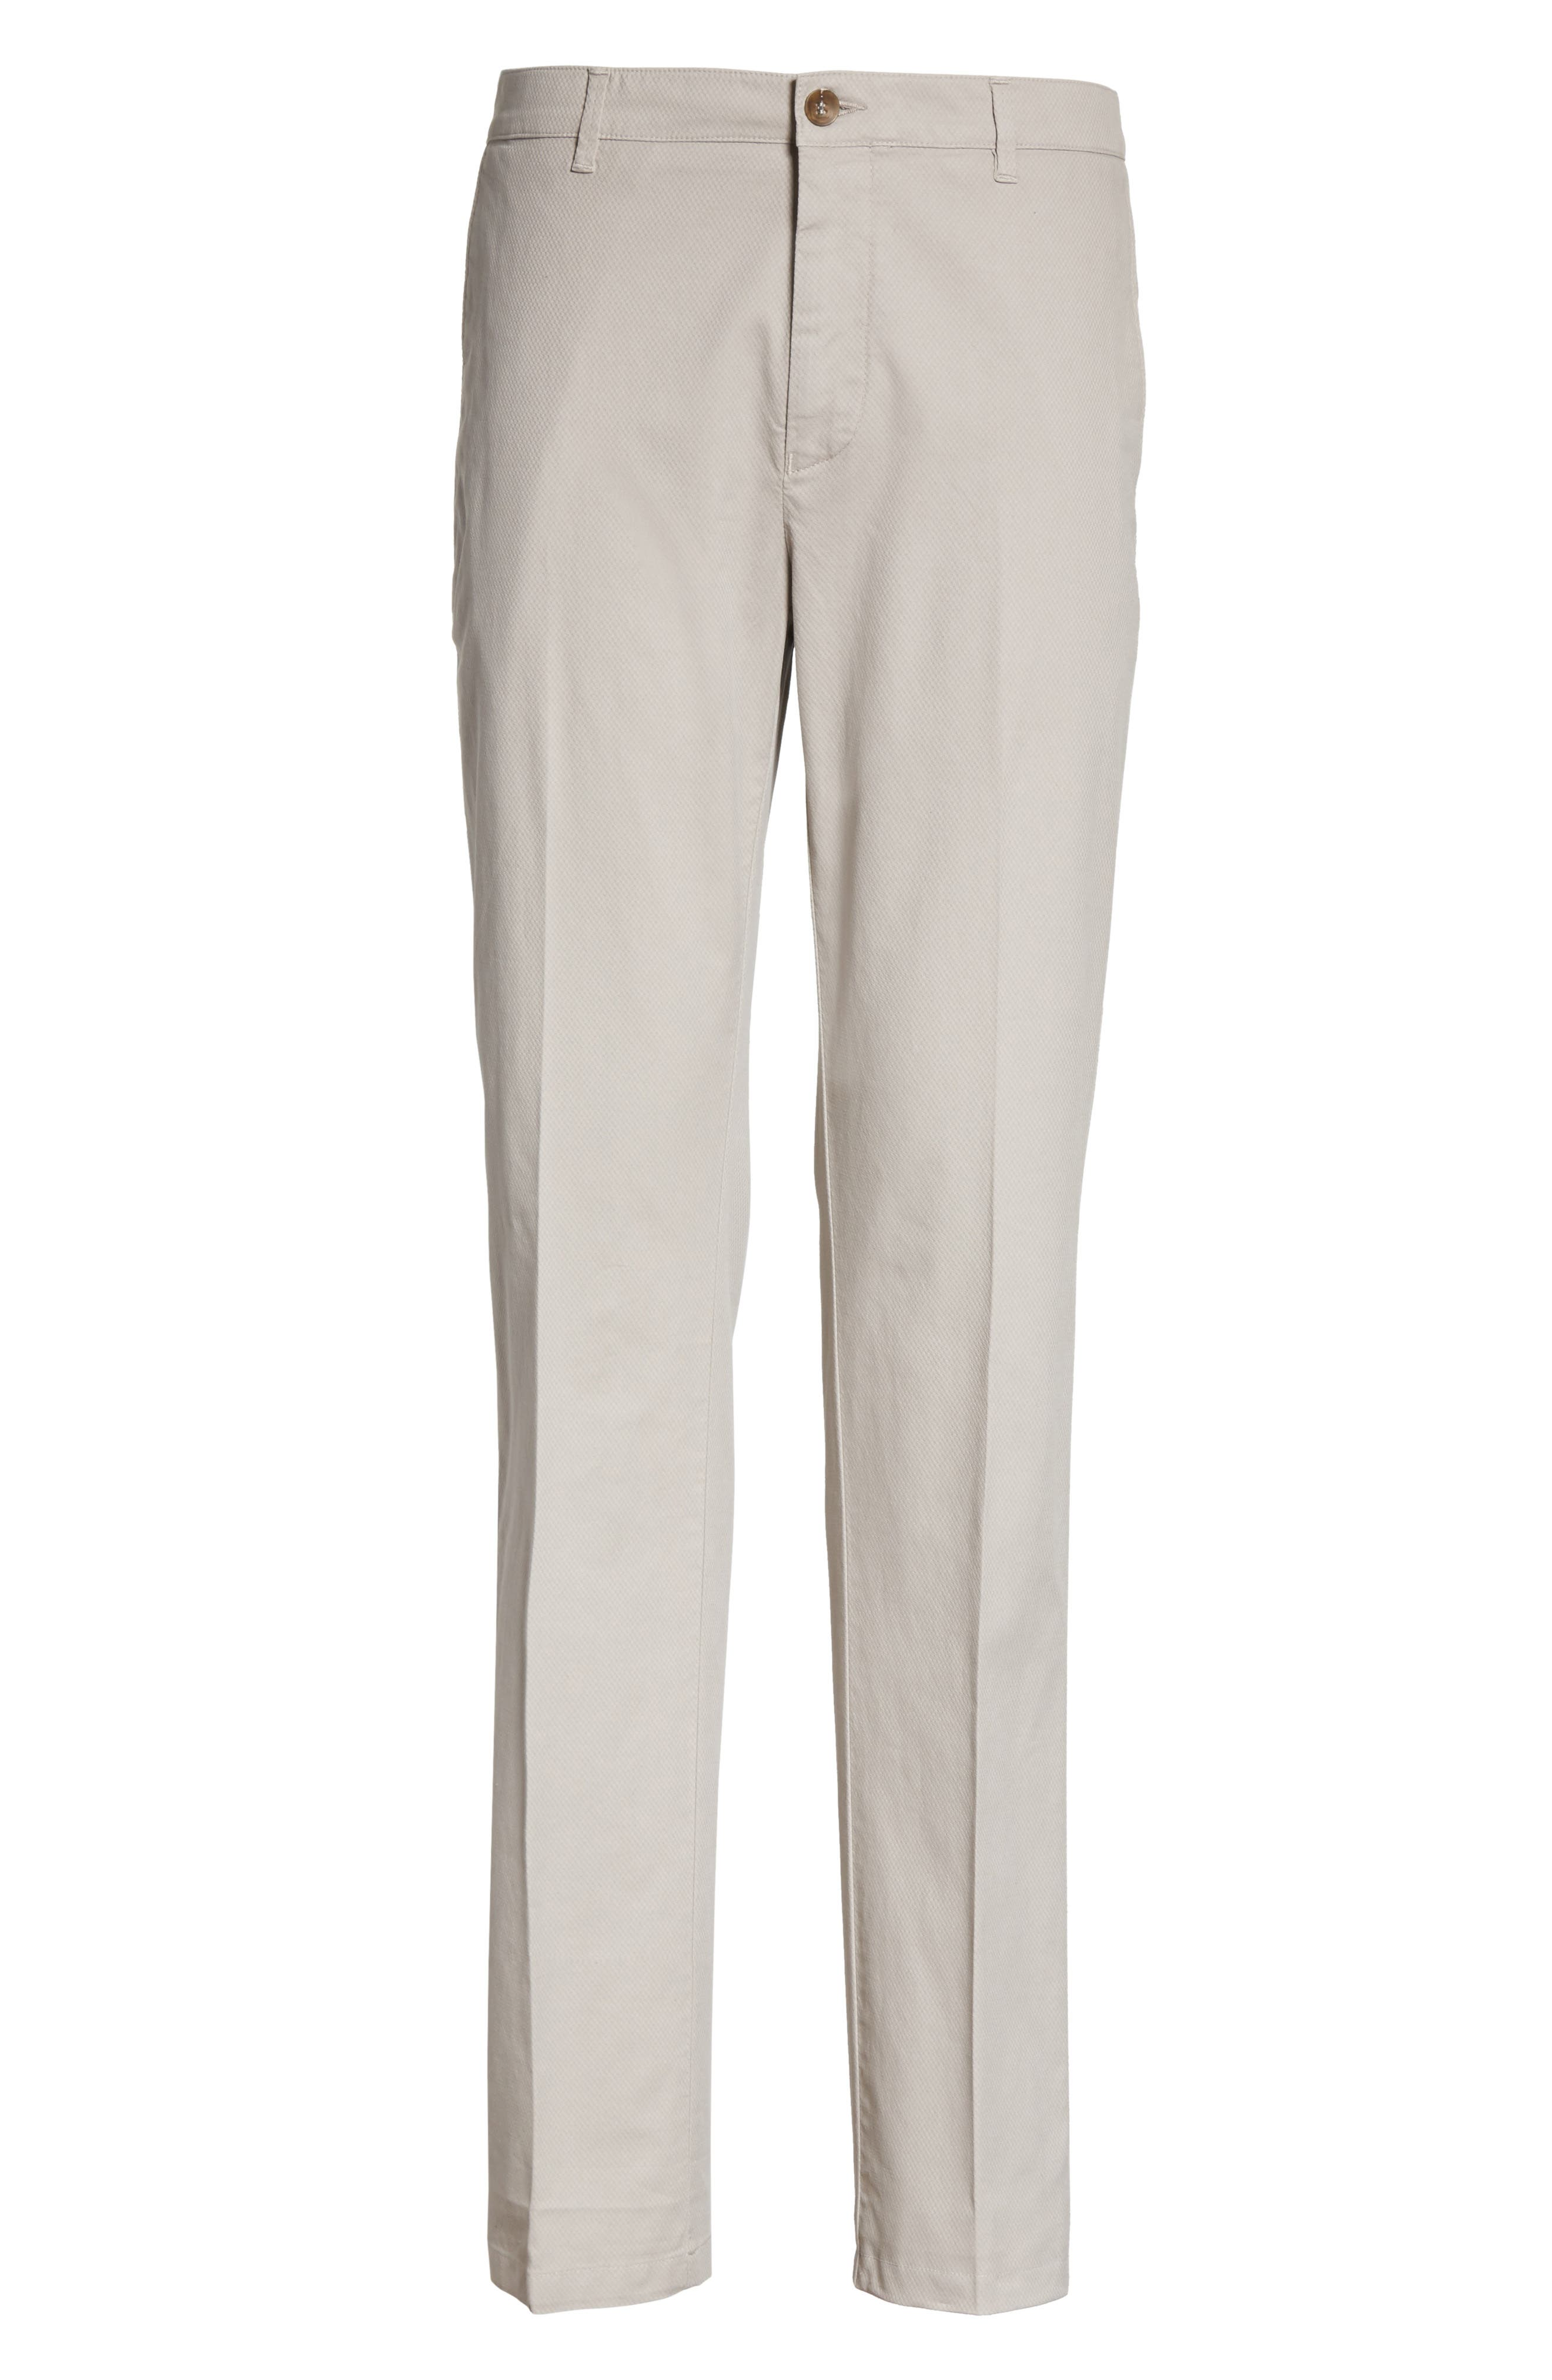 Flat Front Stretch Solid Cotton Trousers,                             Alternate thumbnail 6, color,                             Stone